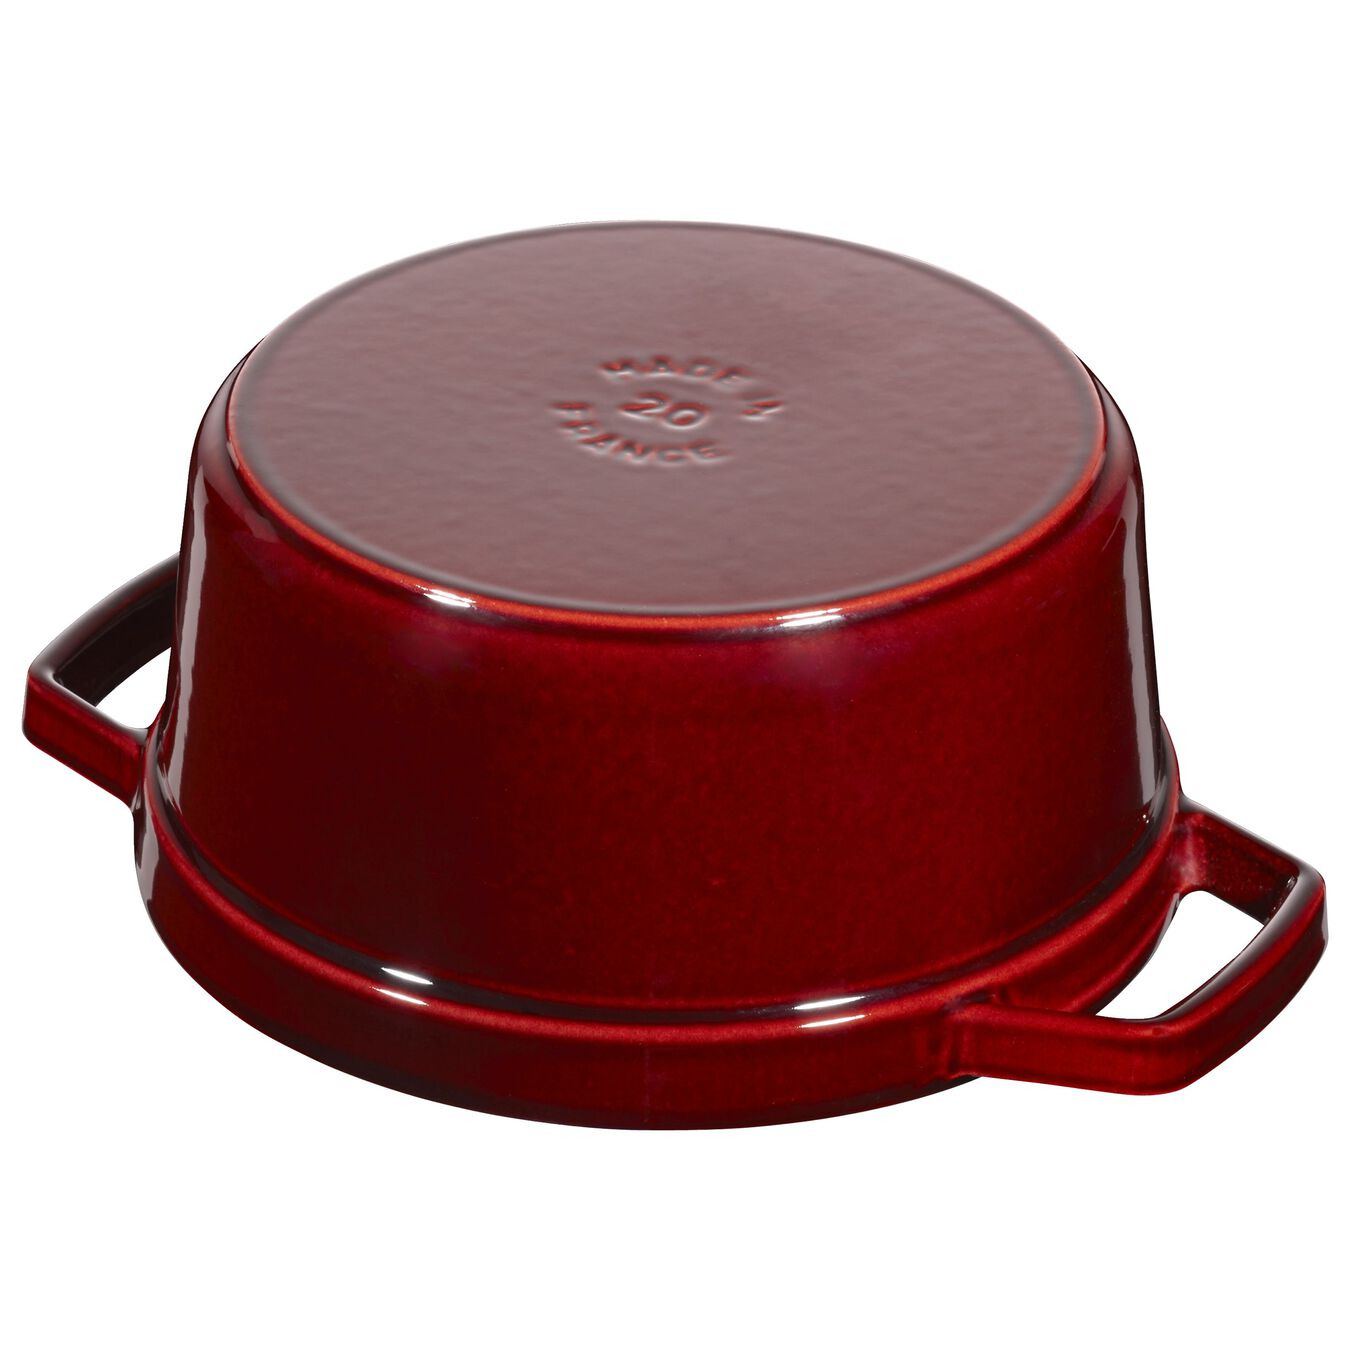 Cocotte 20 cm, rund, Grenadine-Rot, Gusseisen,,large 2